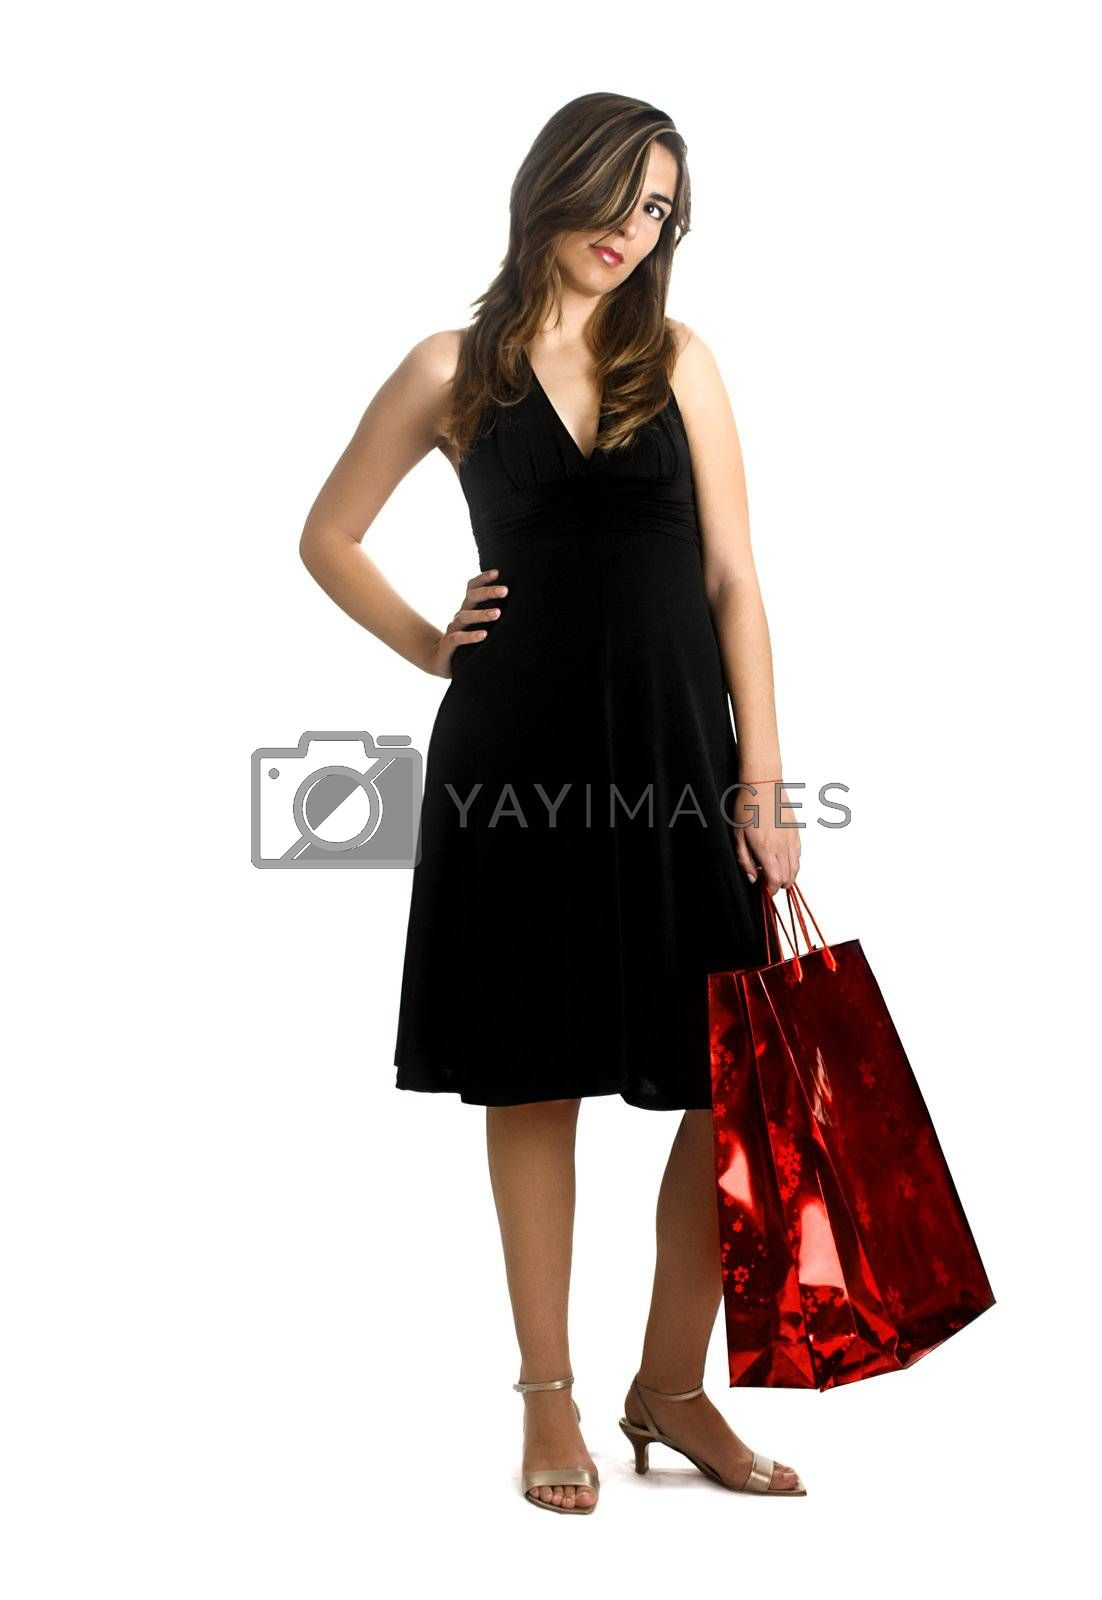 Beautiful woman isolated on a white background with a bag on the left hand.